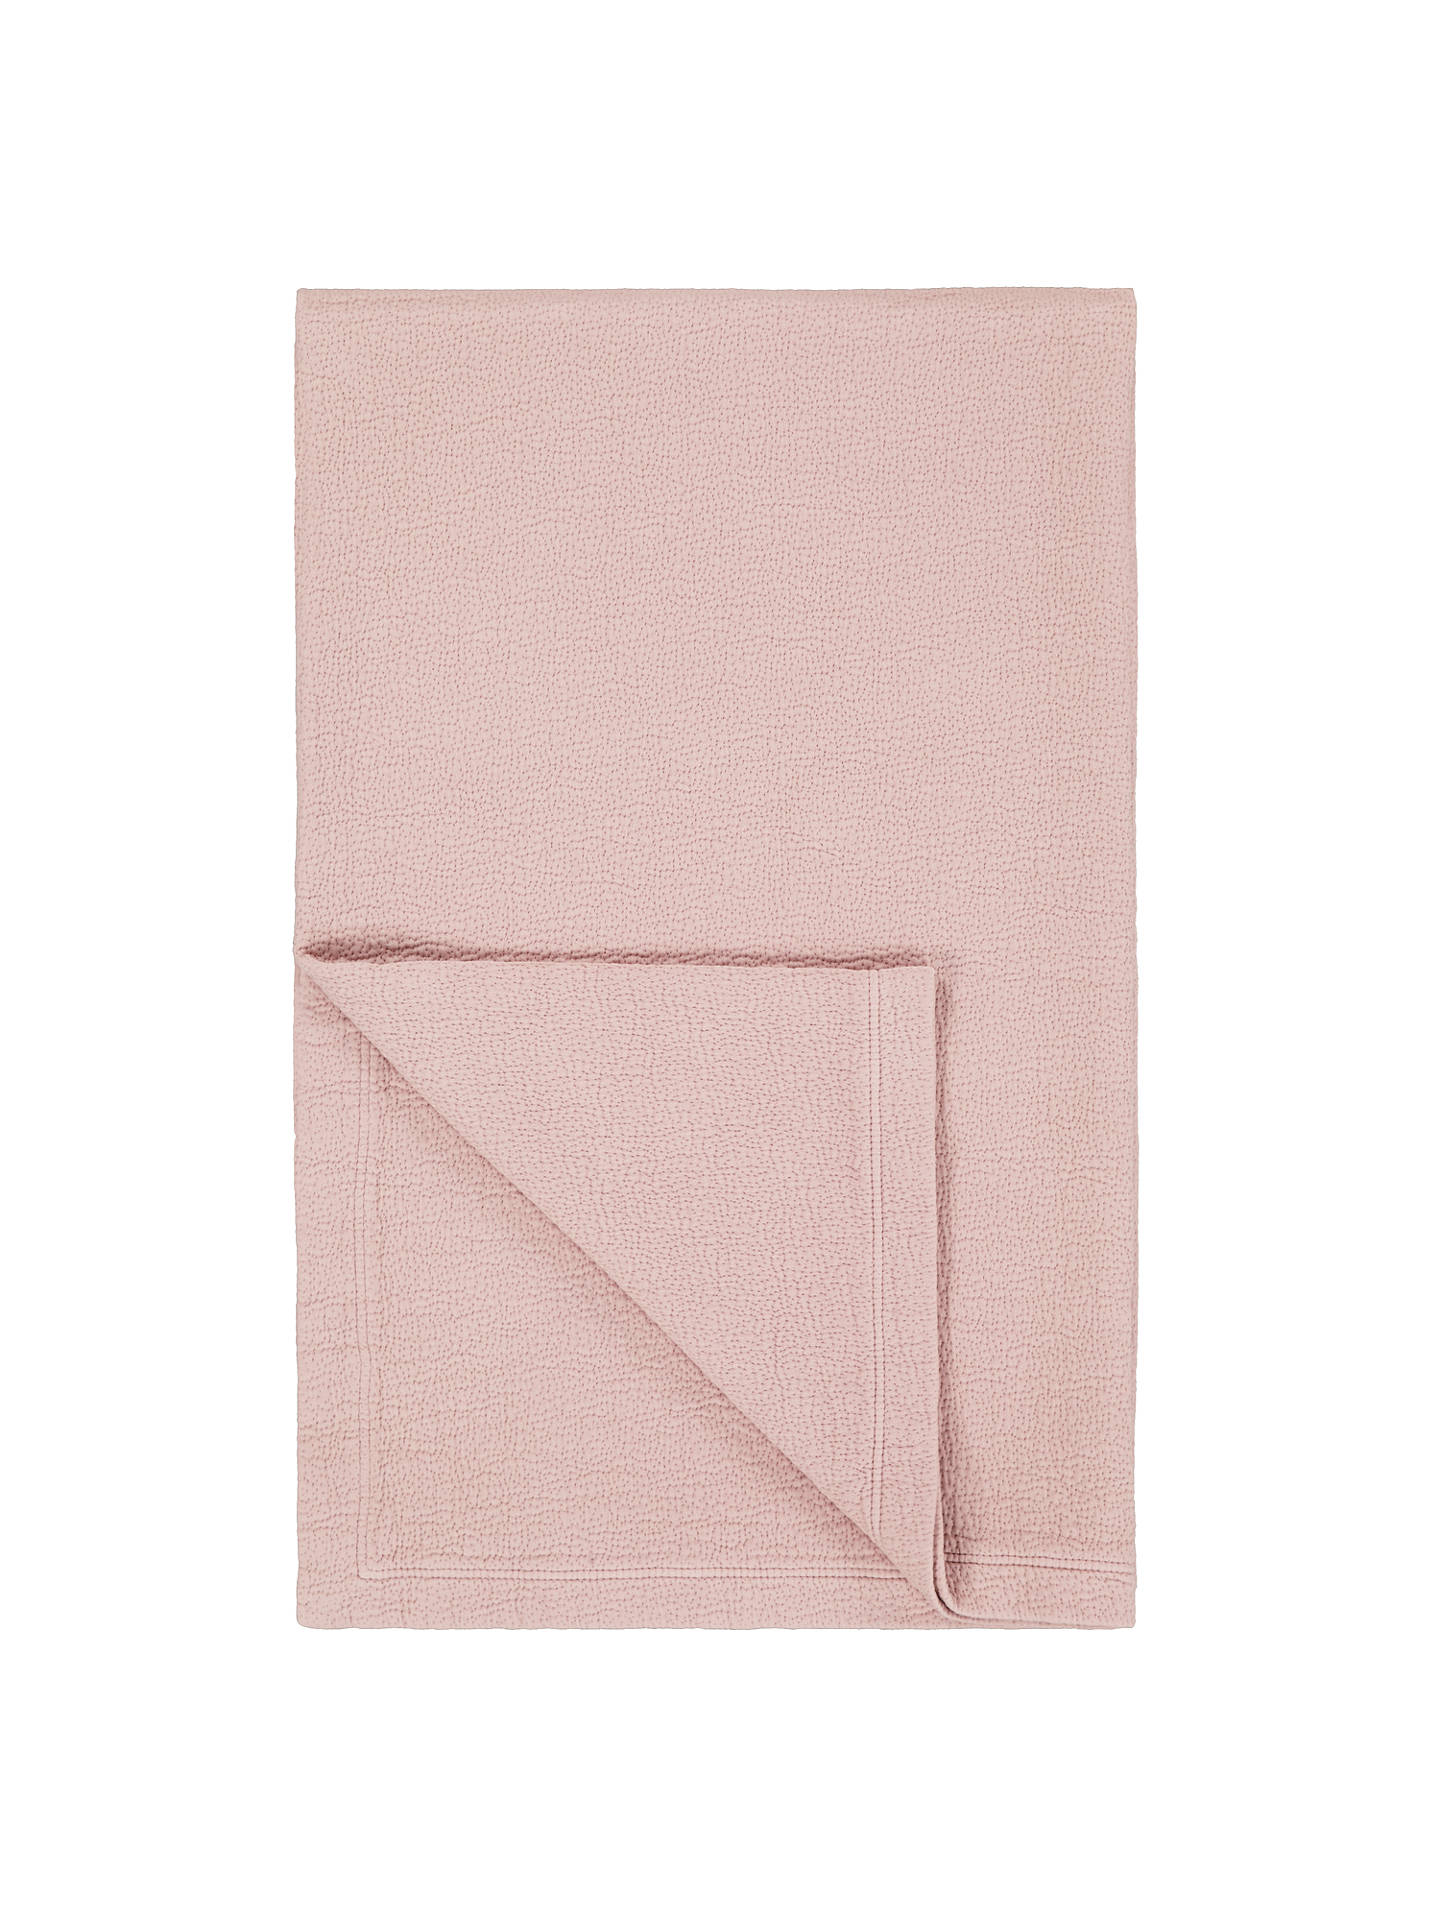 BuyDesign Project by John Lewis No.019 Throw, L200 x W150cm, Plaster Online at johnlewis.com